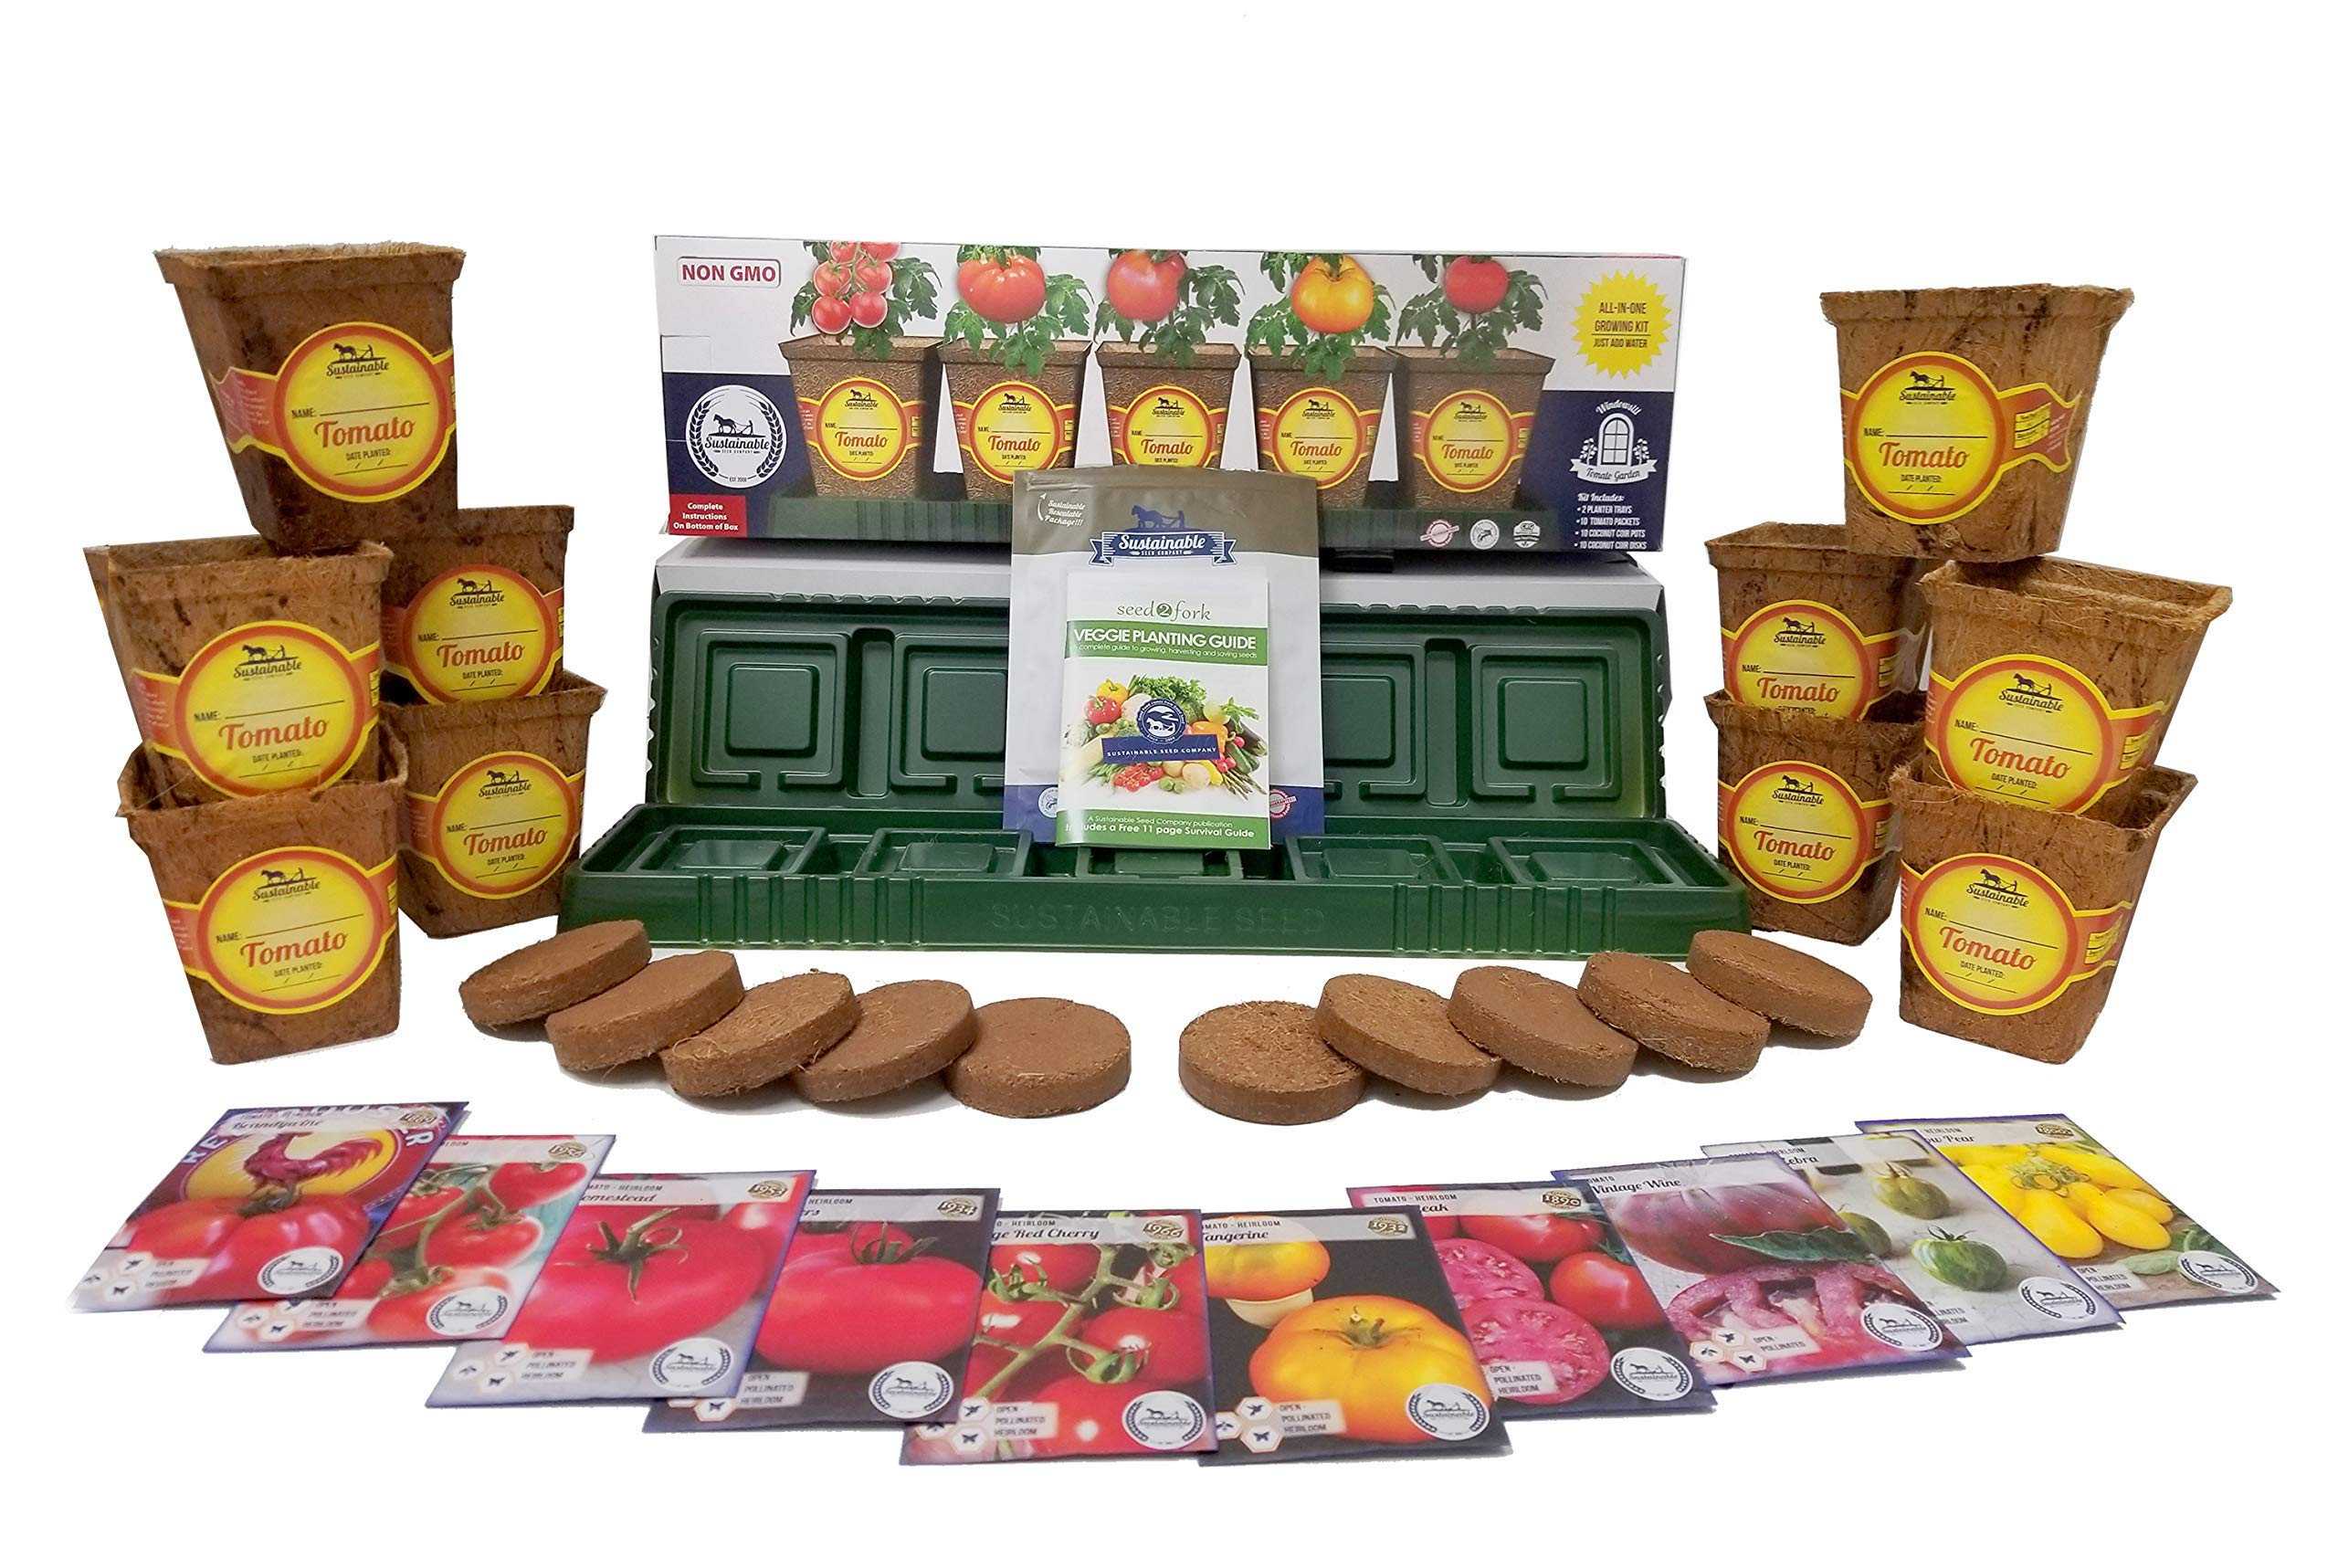 Windowsill Tomato Garden Kit, Tomato Planter Comes Complete with a 10 Variety Non GMO Heirloom Tomato Seed Collection & Tomato Pots by Sustainable Seed Company